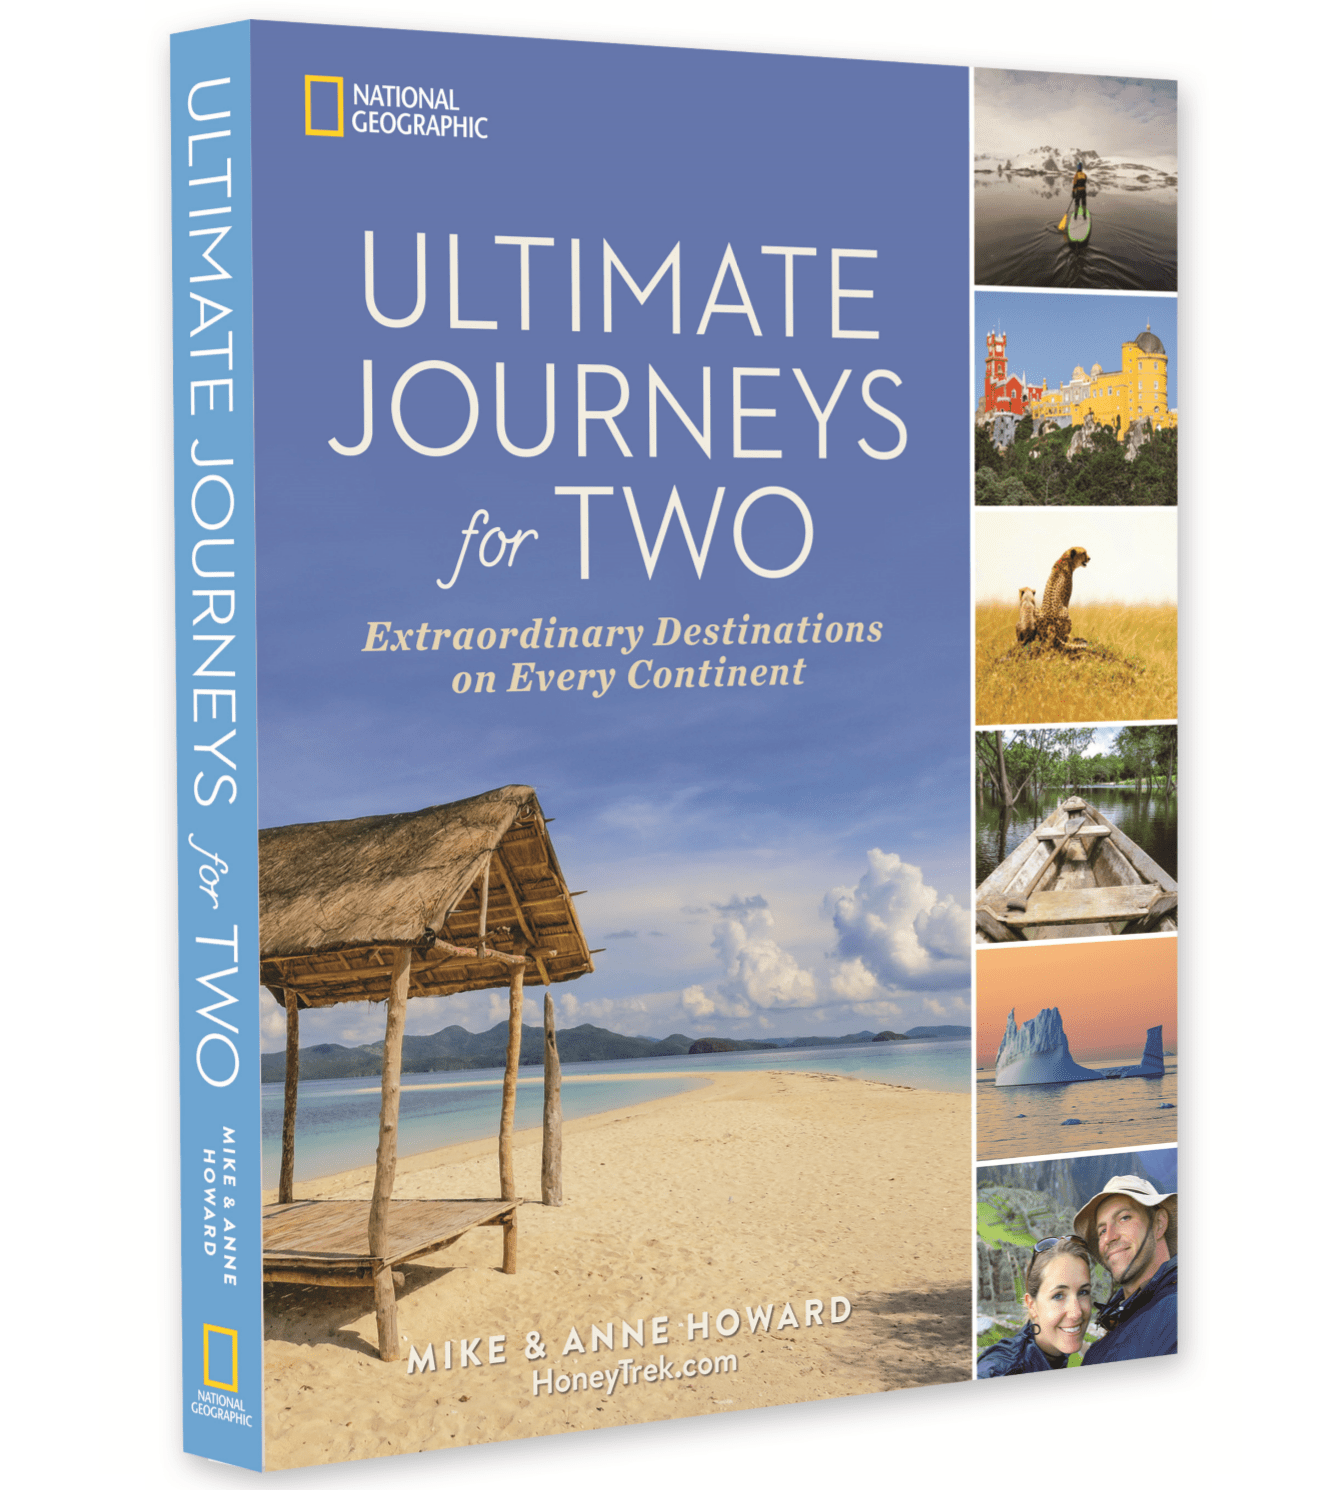 """""""Ultimate Journeys for Two"""" by Mike & Anne Howard is out now. Images by HoneyTrek.com."""